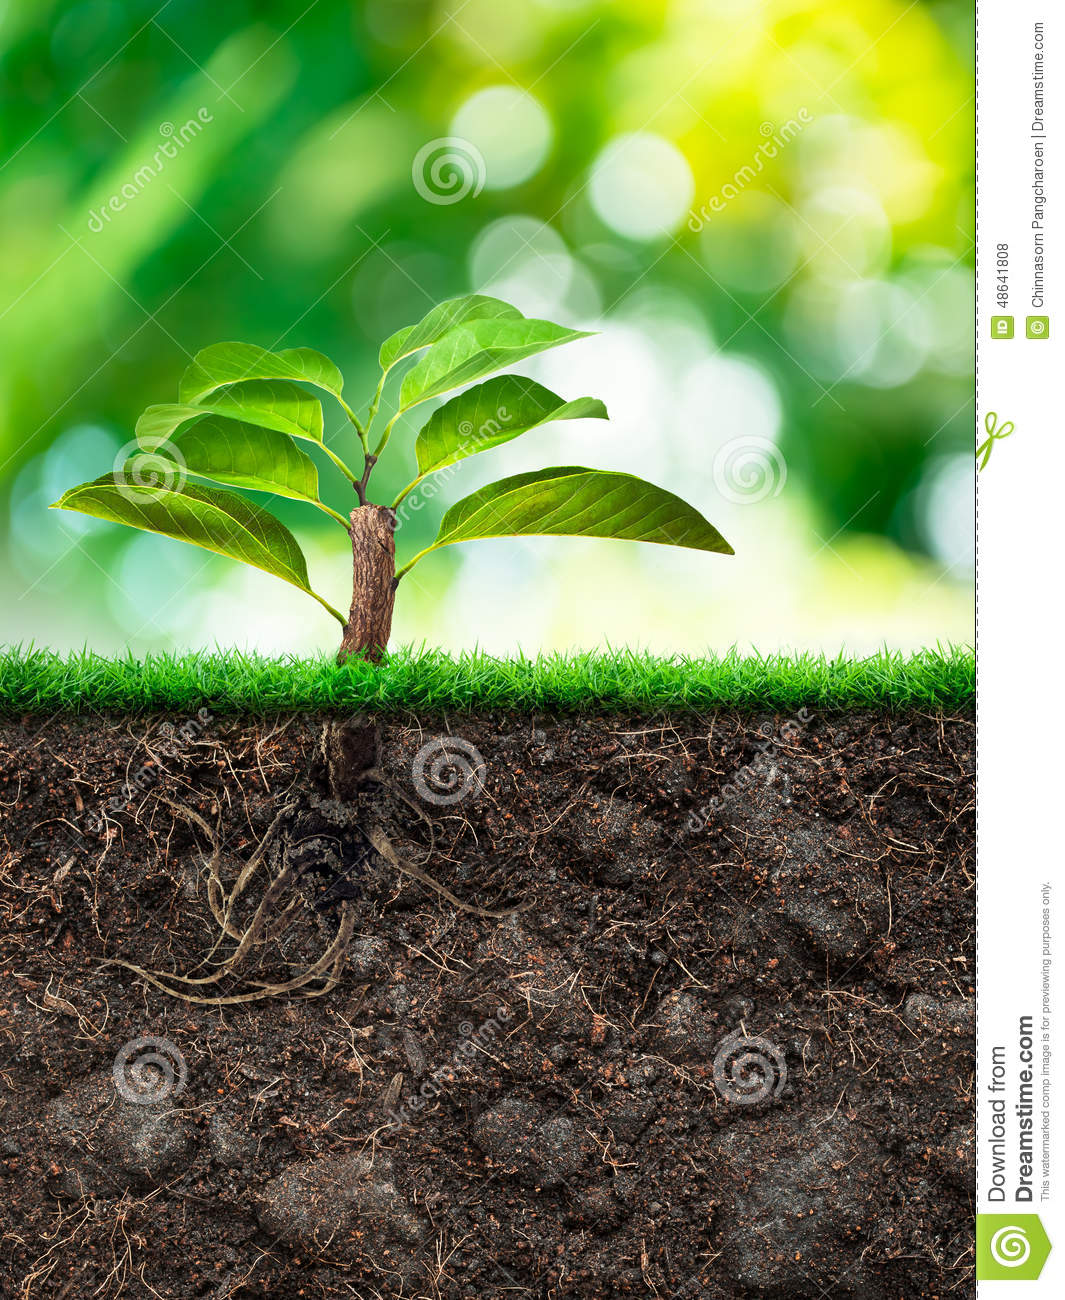 Tree and soil with grass stock photo image 48641808 for Soil and its origin